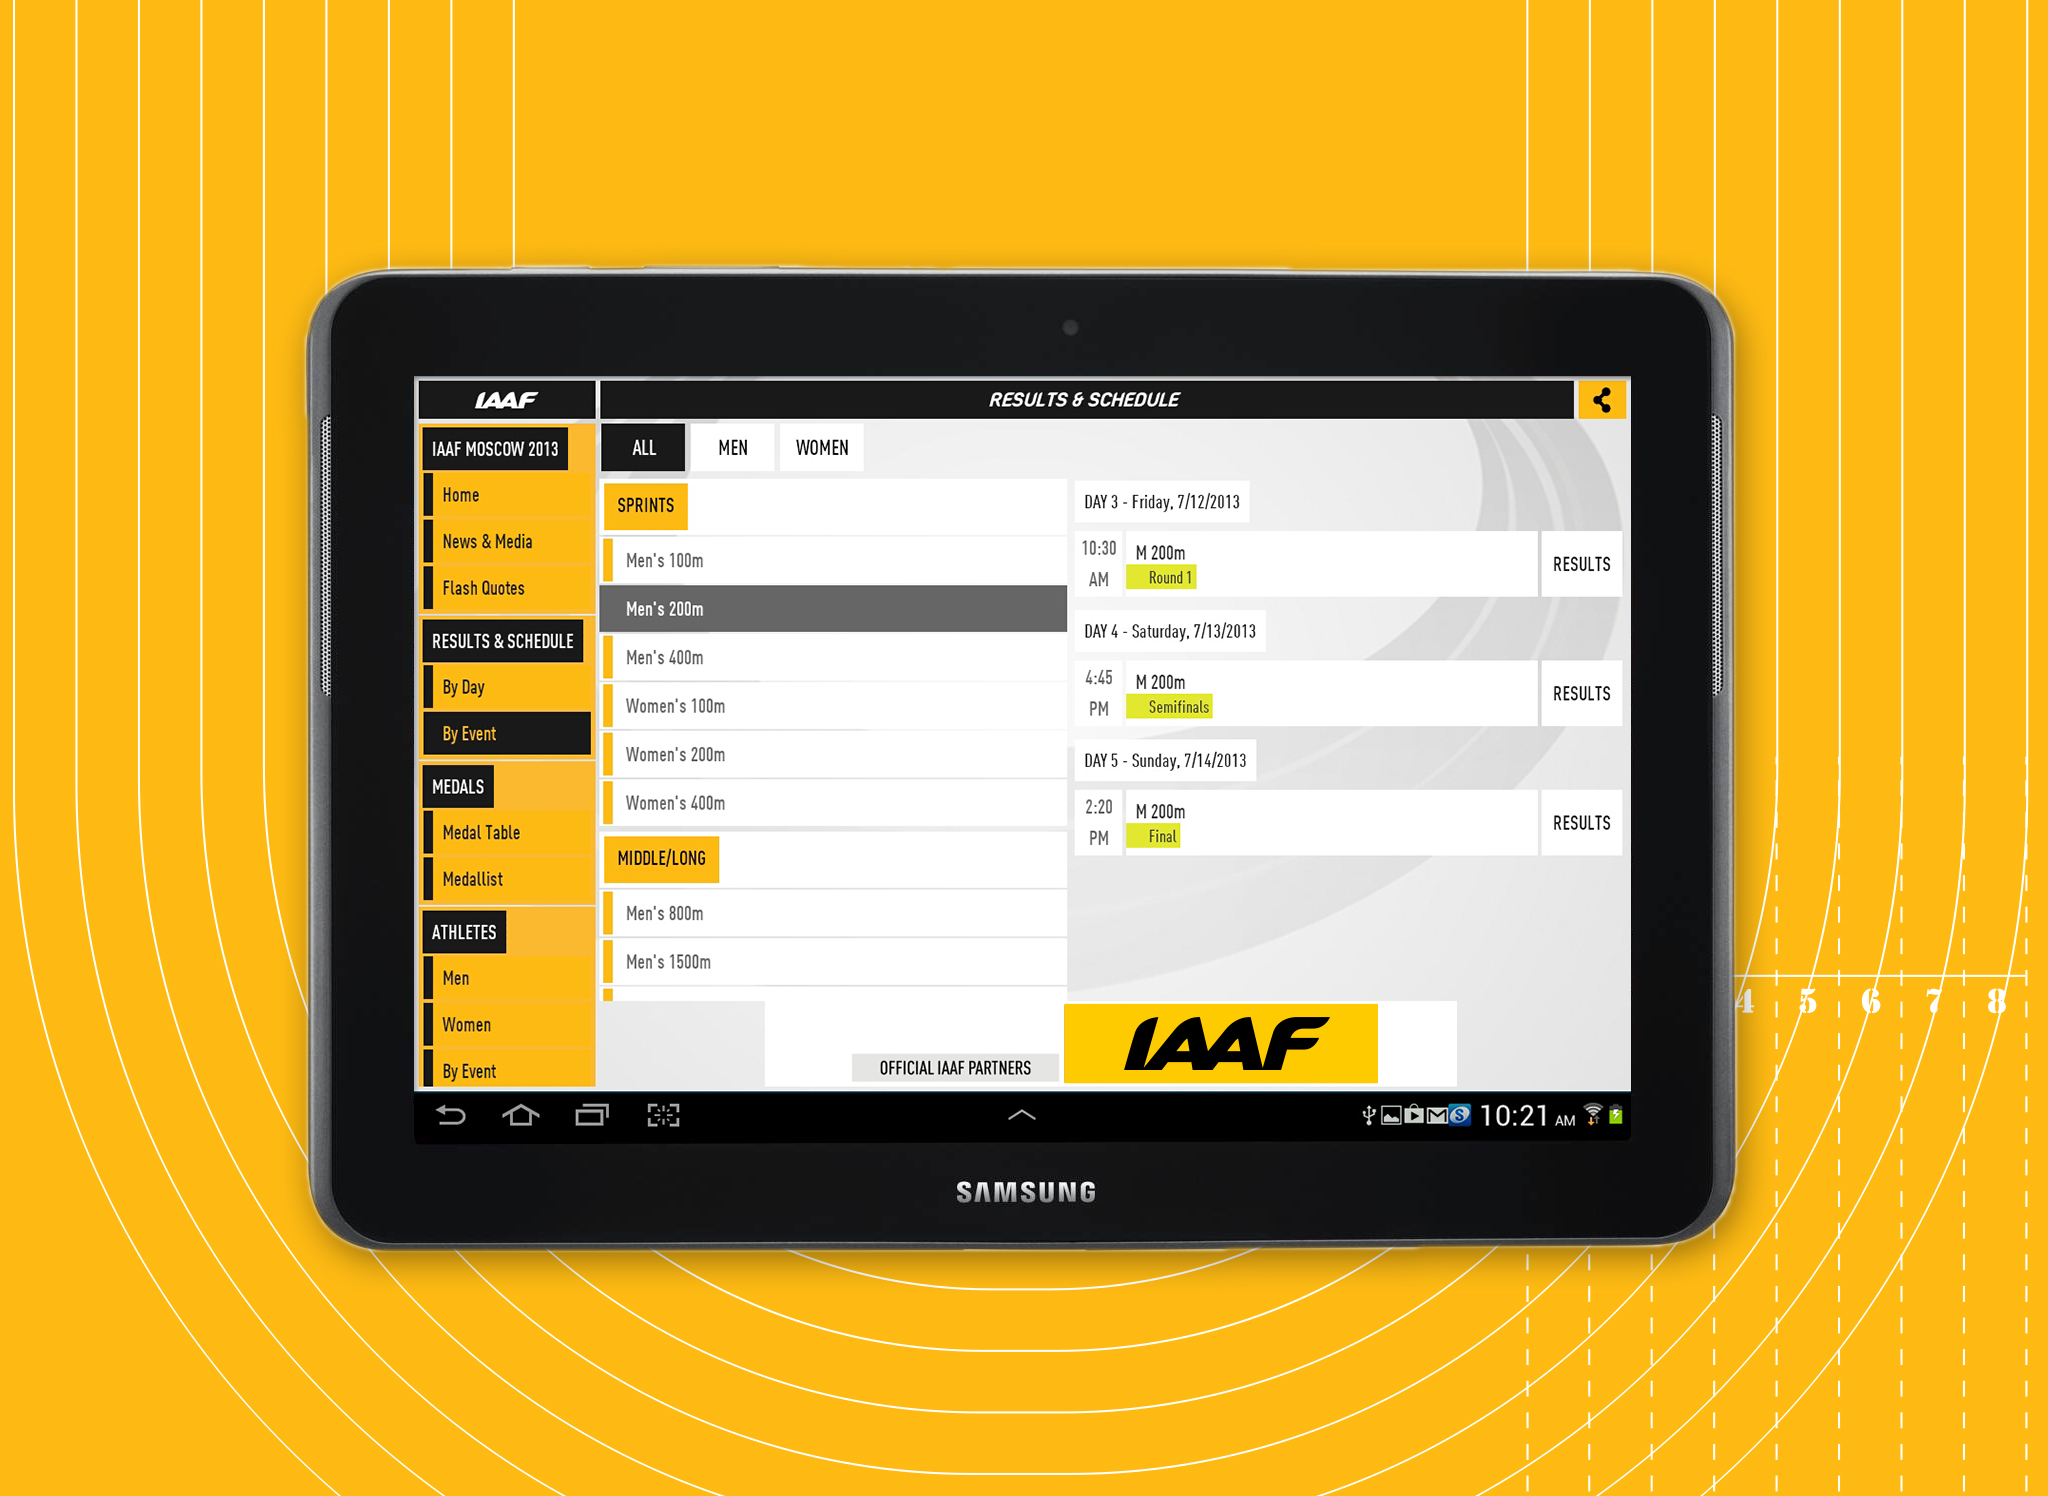 The IAAF app is available from the Apple App Store, the Google Play Store and the Amazon App Store